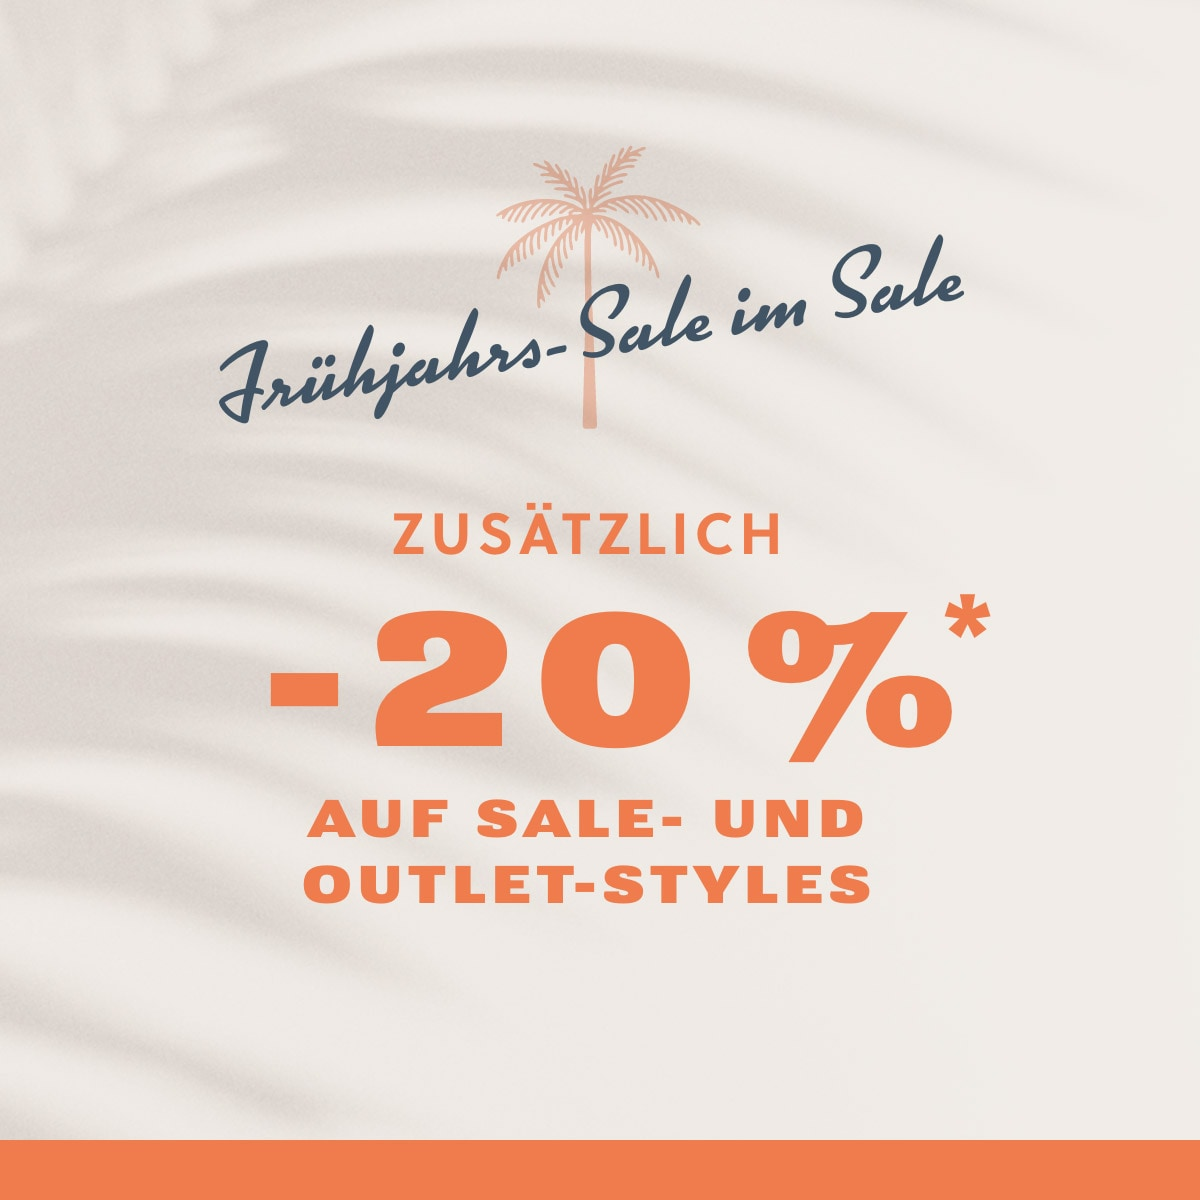 SPRING SALE ON SALE EXTRA 20% OFF* SALE AND OUTLET